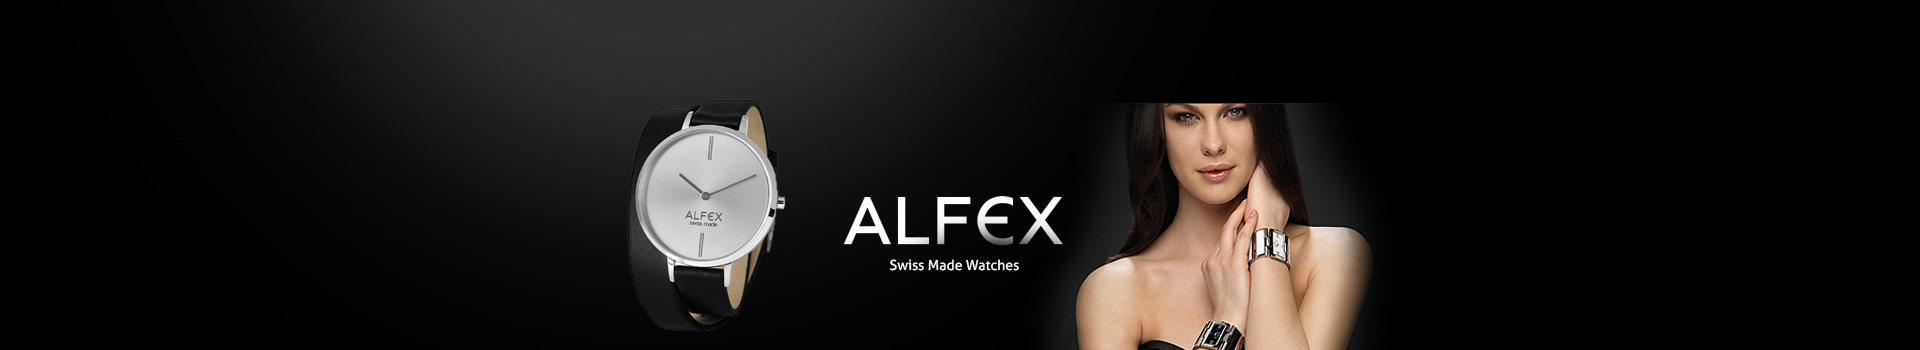 Collections_Slider_ALfex1